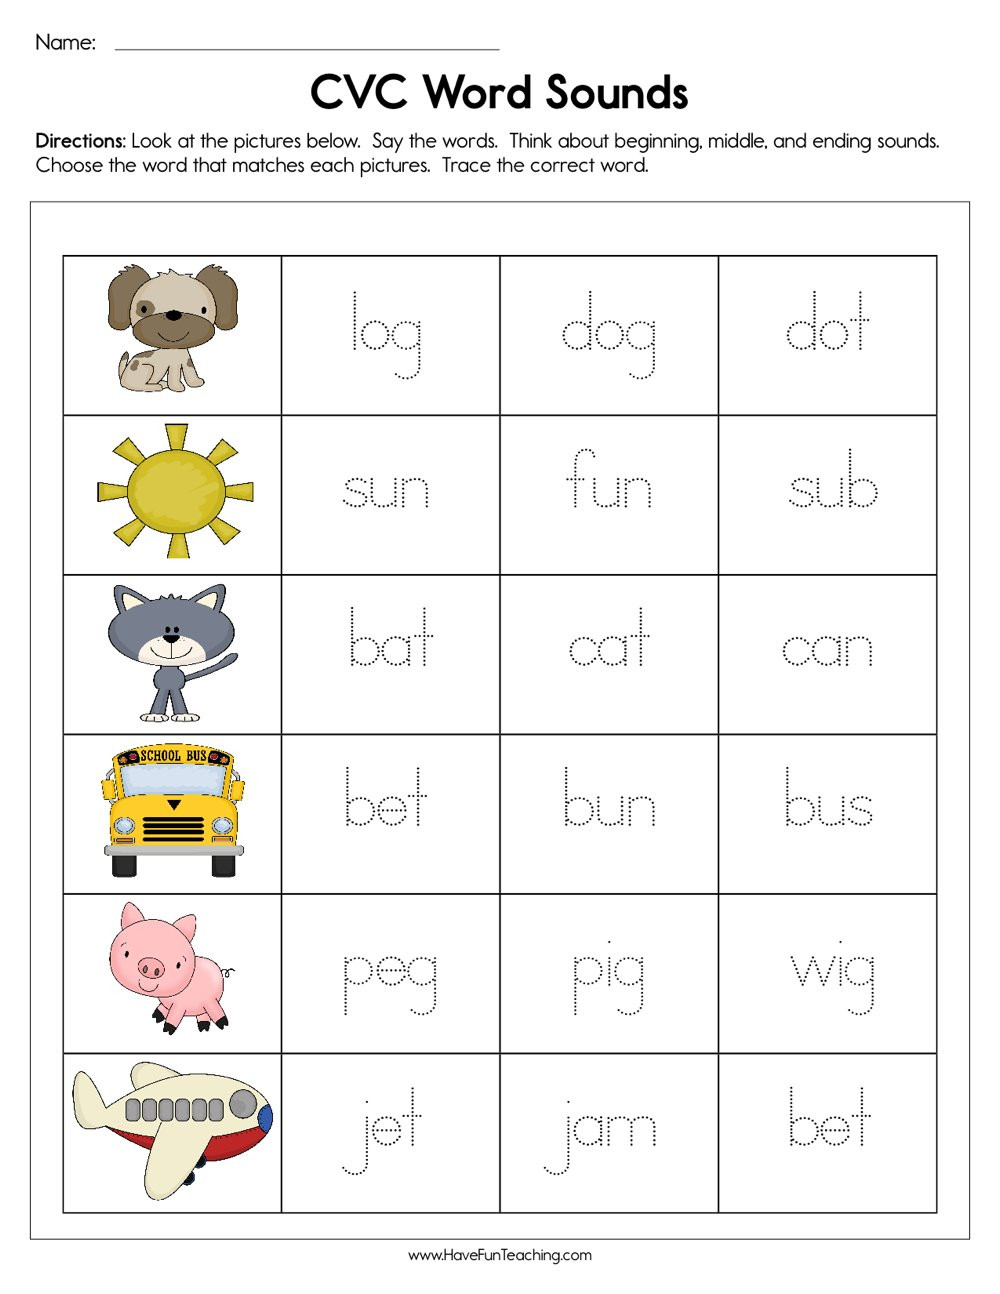 Middle sounds Worksheets for Kindergarten Cvc Word sounds Worksheet